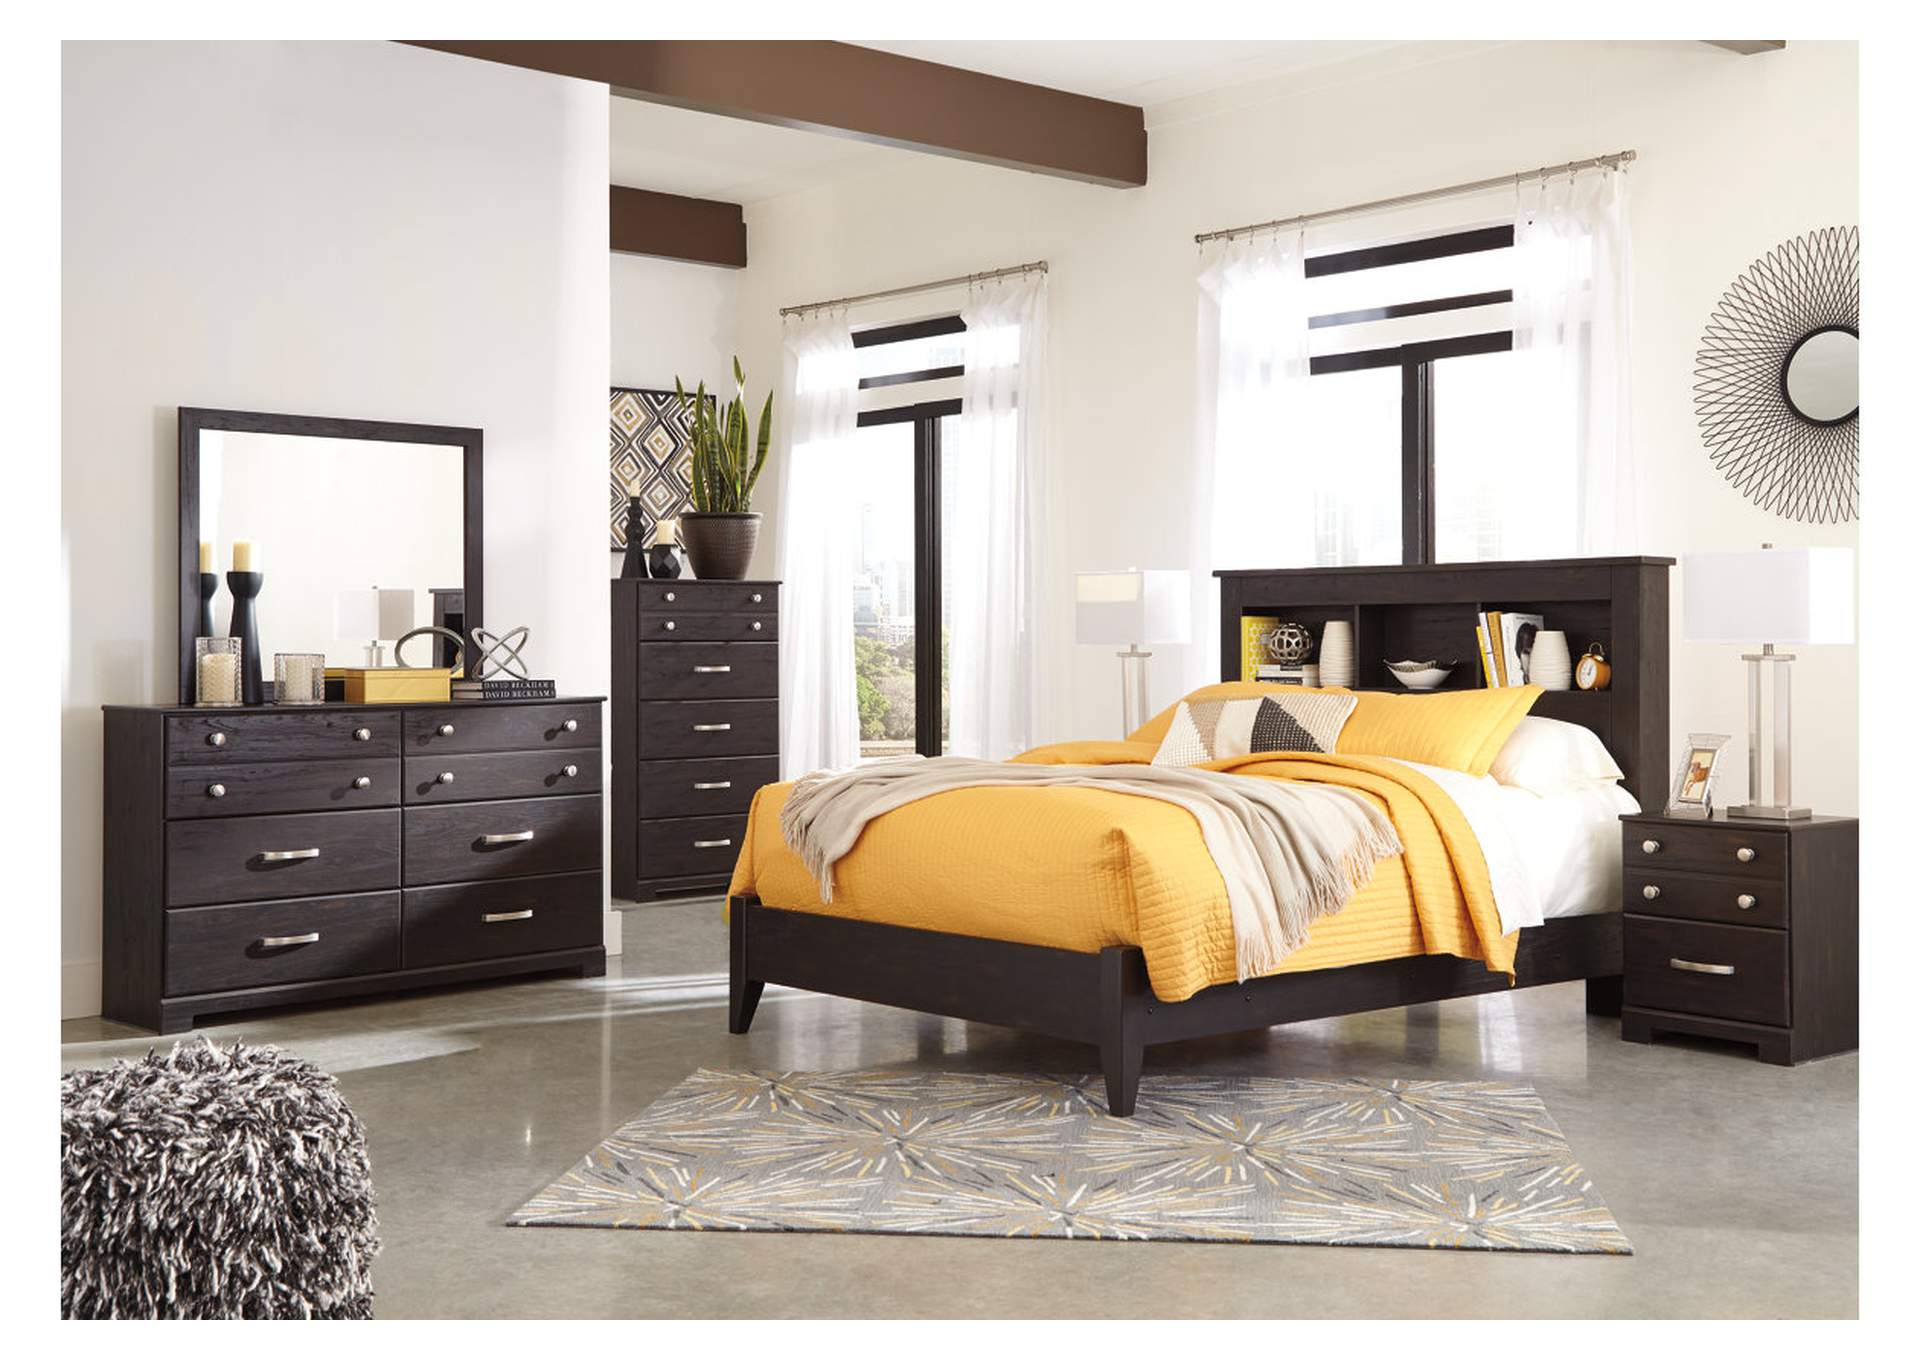 Reylow Dark Brown Queen Bookcase Panel Bed w/Dresser & Mirror,Signature Design By Ashley